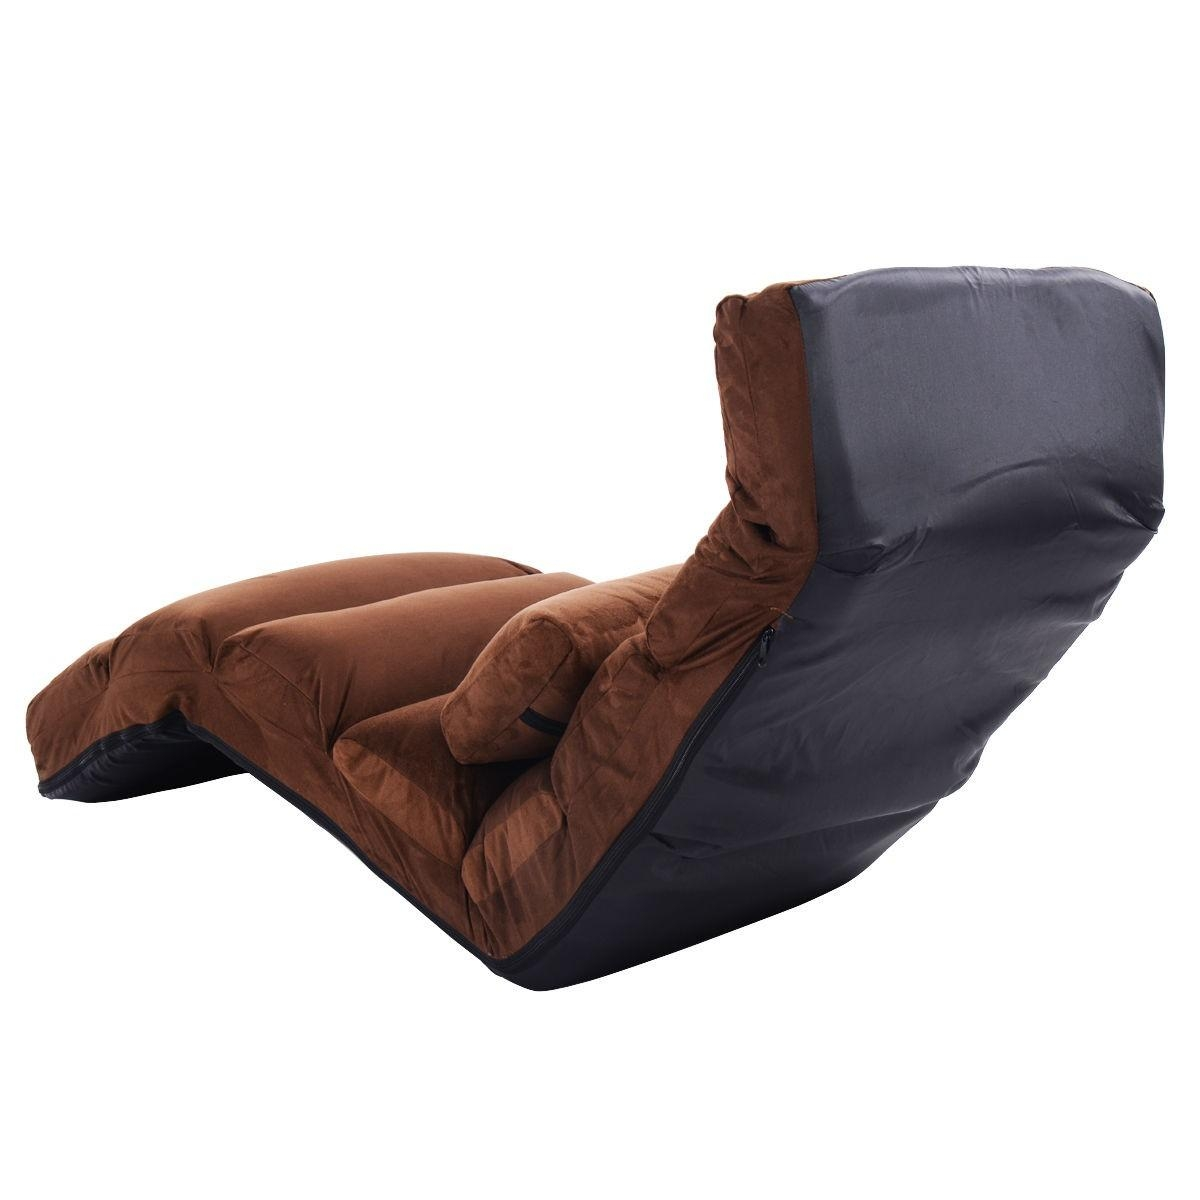 Folding Lazy Sofa Couch With Pillow – Floor Chairs – Chairs Intended For Lazy Sofa Chairs (Image 8 of 20)